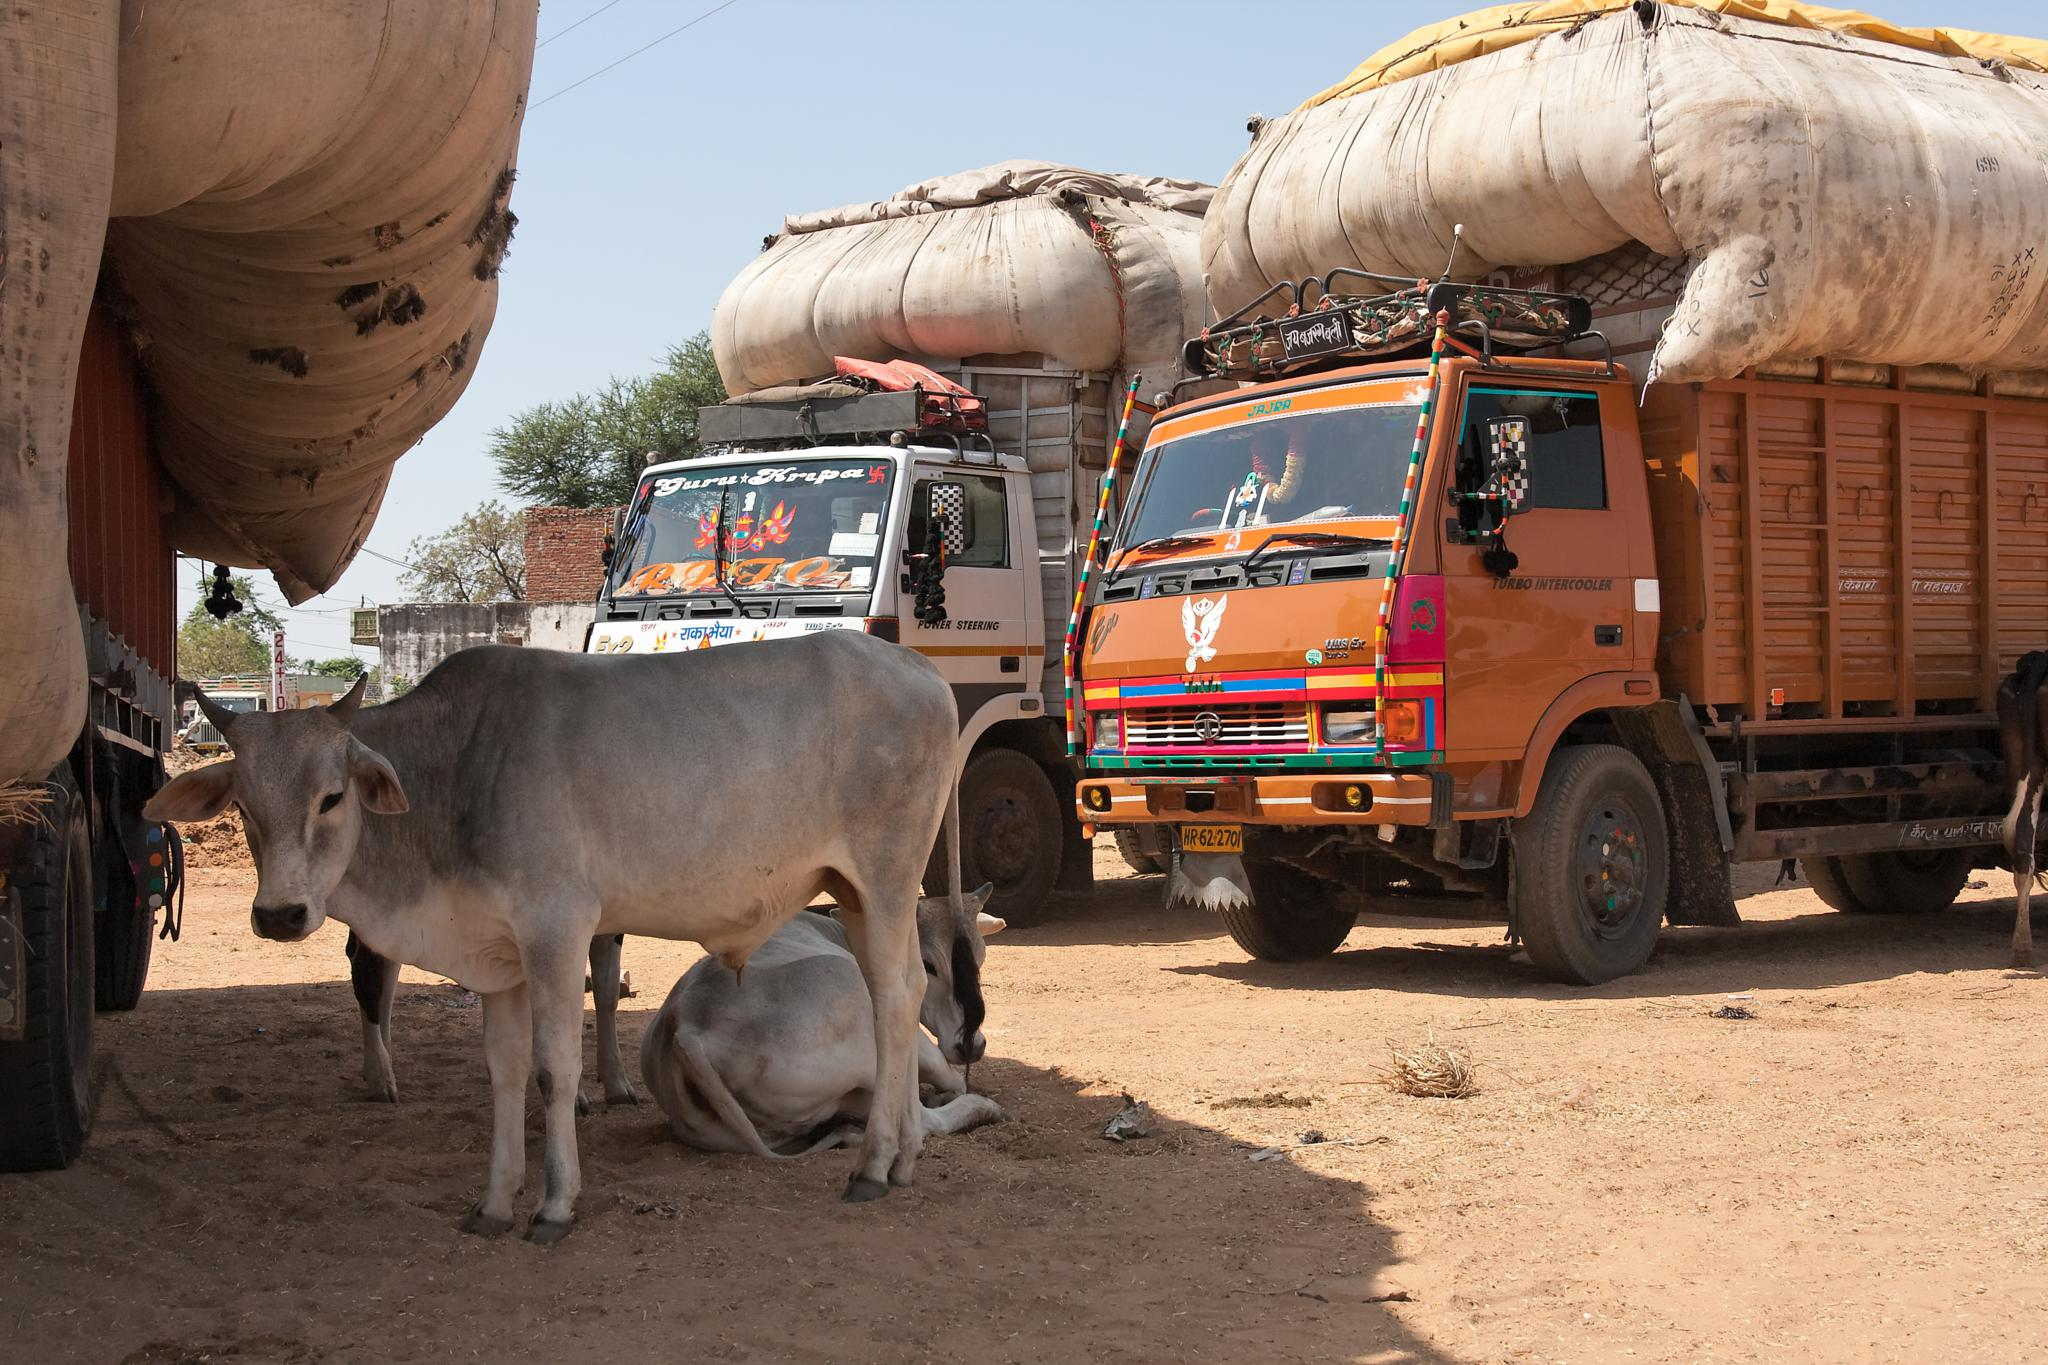 Cotton trucks in India by Patrice Sarzi